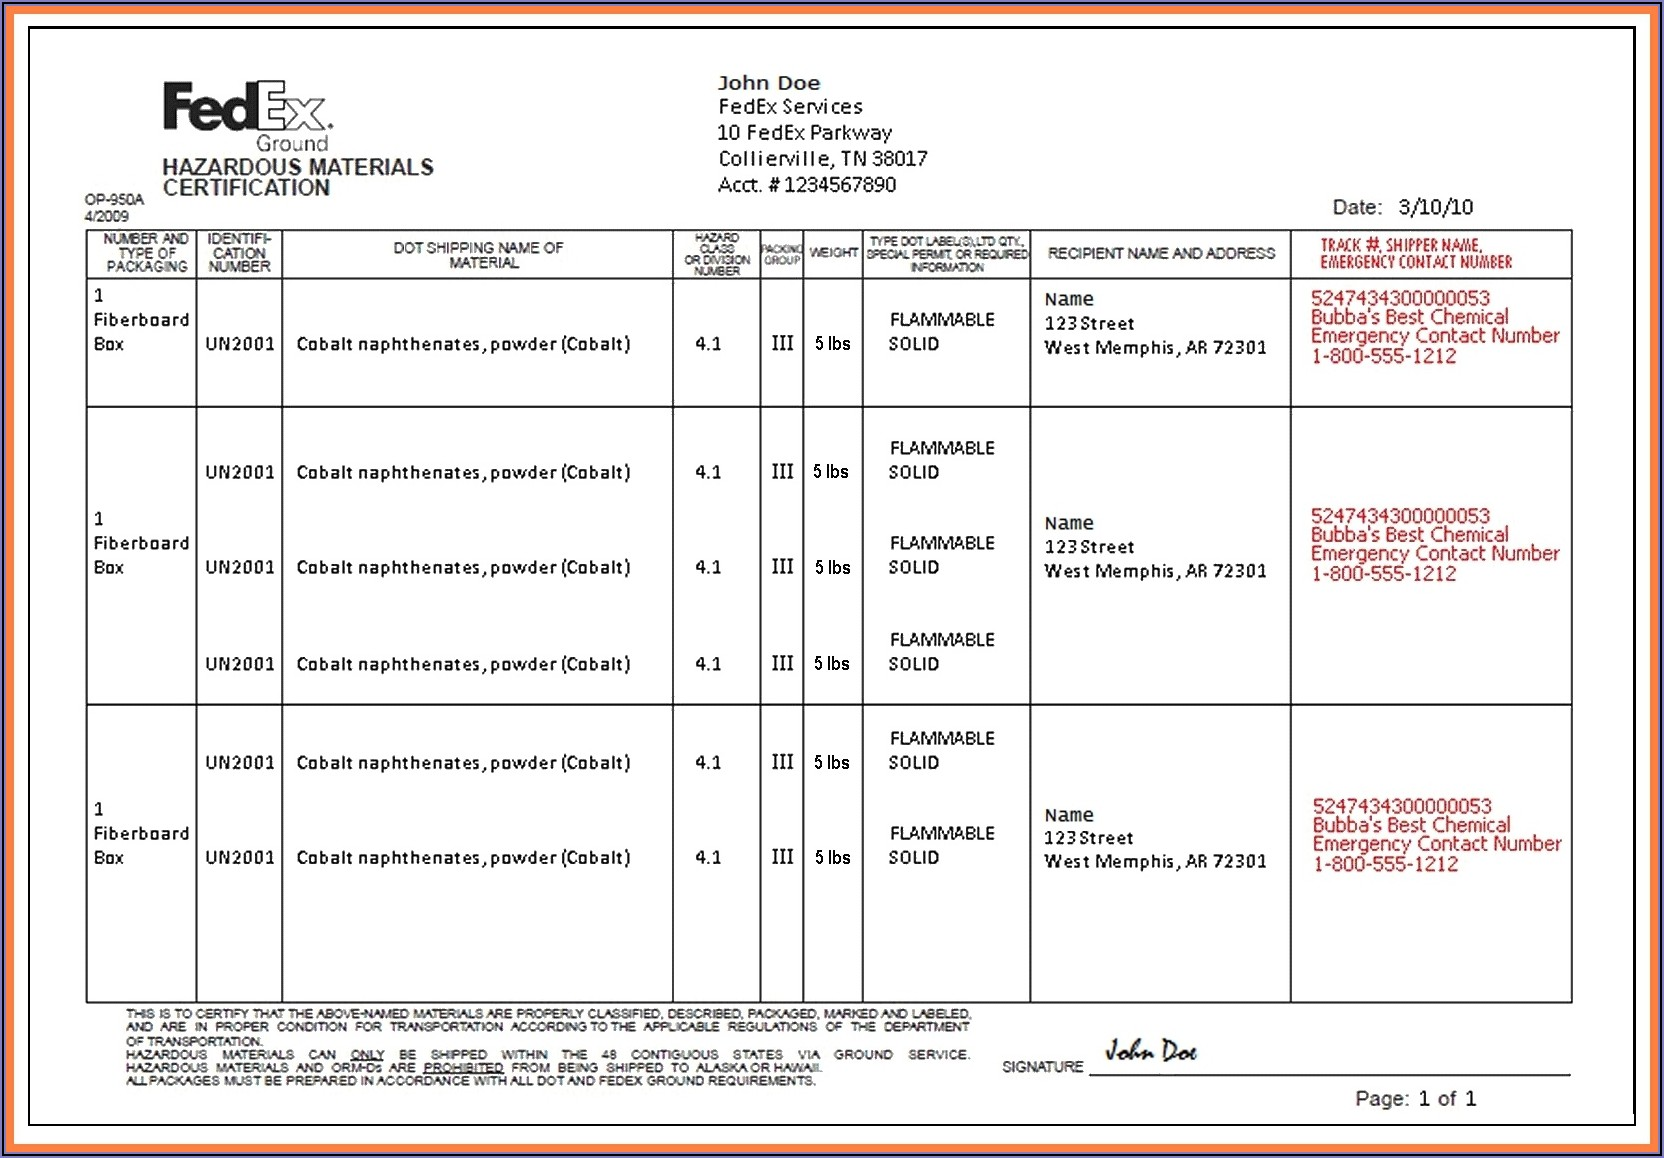 Fedex Ground Commercial Invoice Form